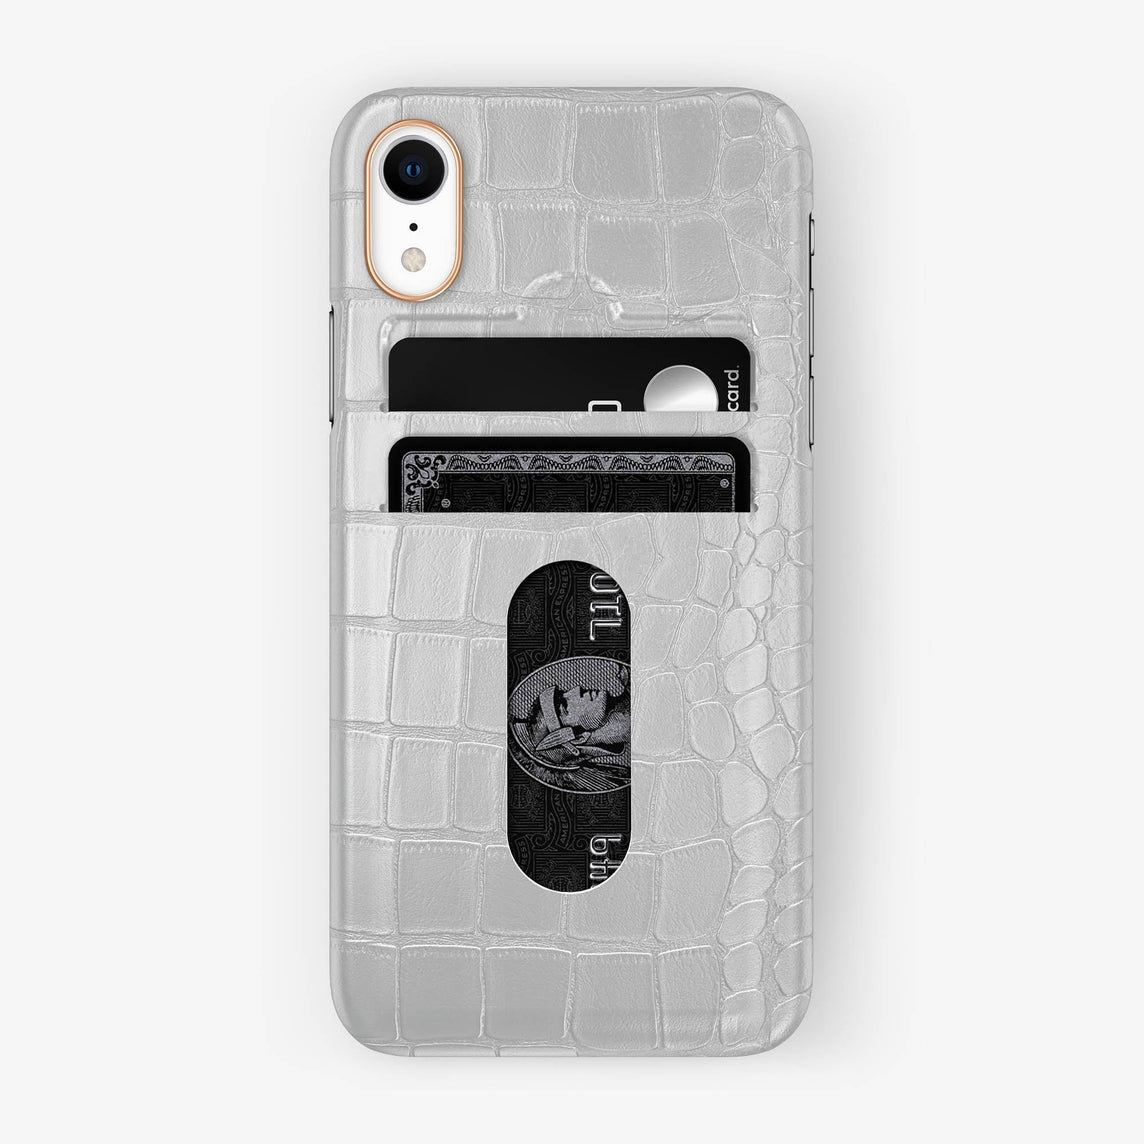 Alligator [iPhone Card Holder Case] [model:iphone-xr-case] [colour:white] [finishing:rose-gold]